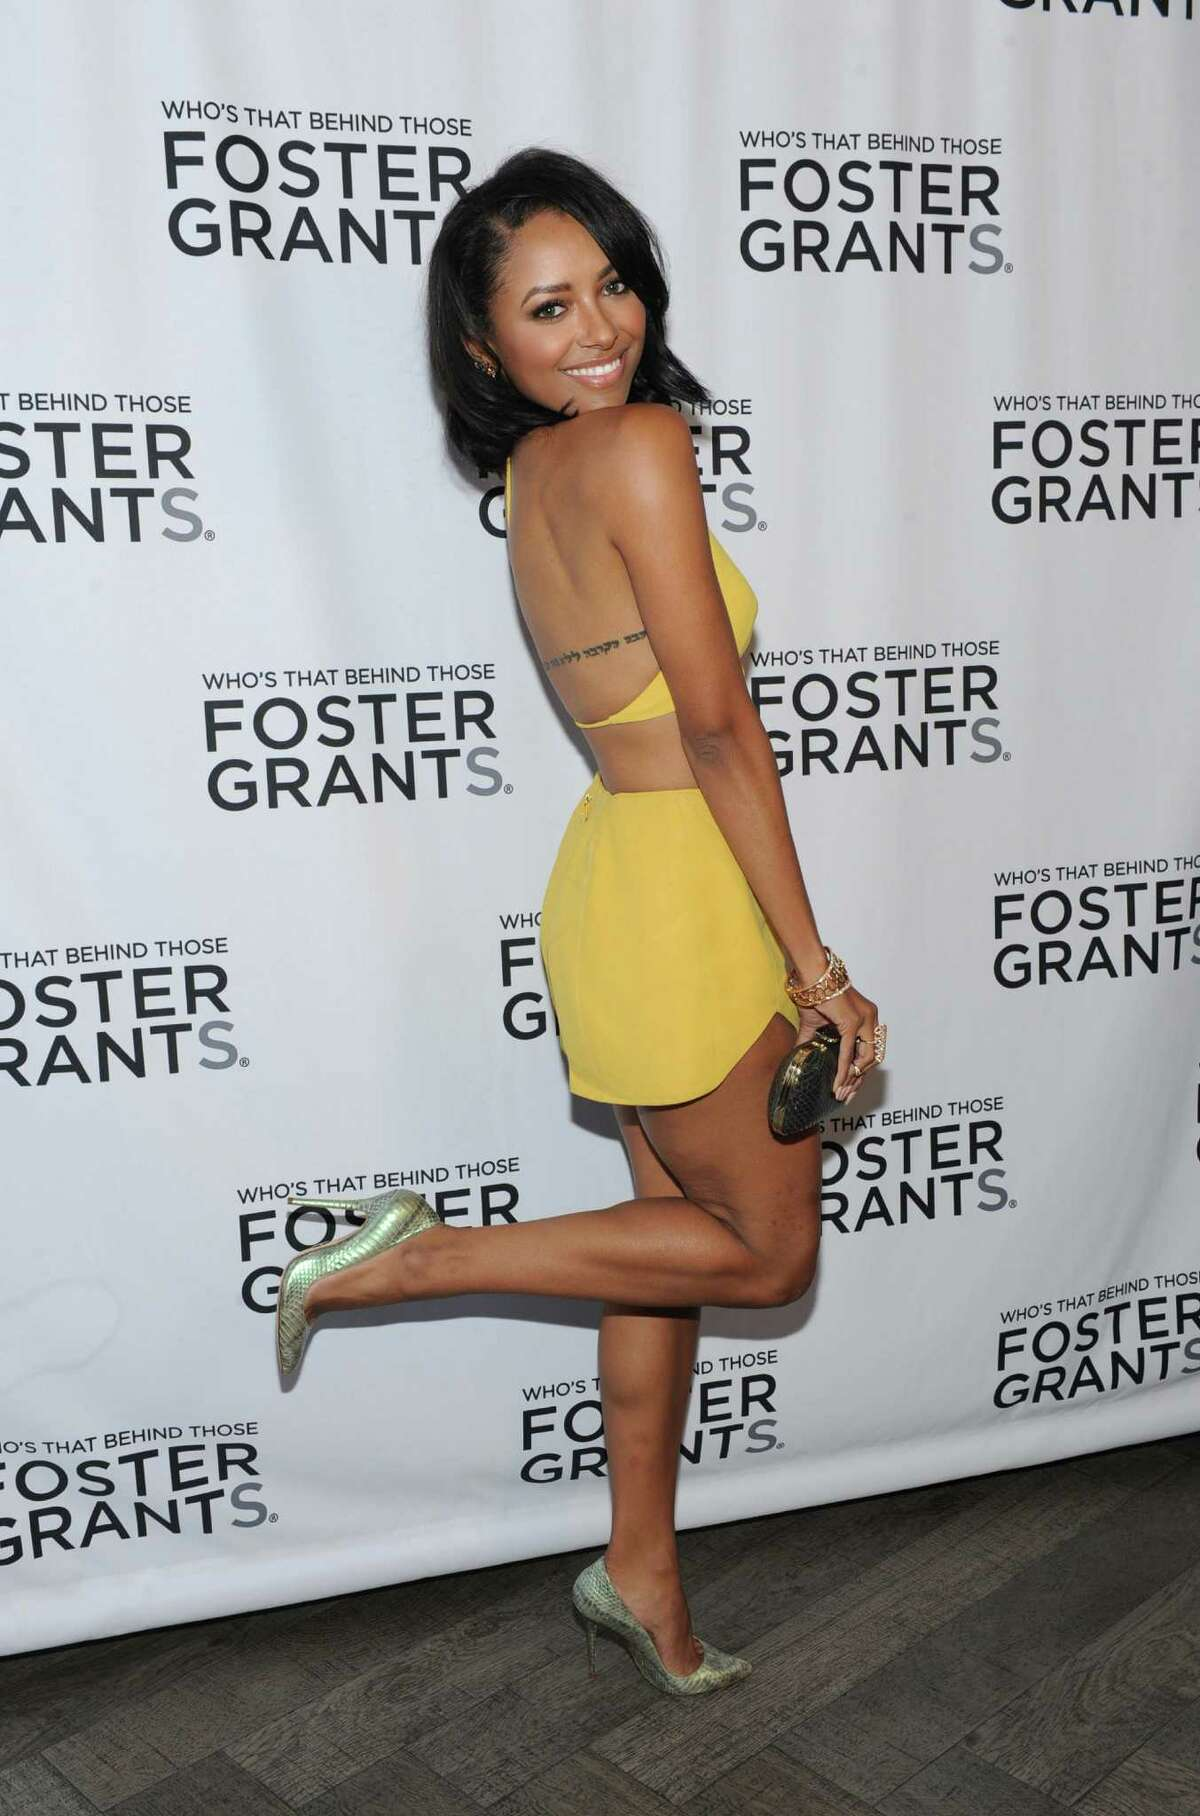 IMAGE DISTRIBUTED FOR FOSTER GRANT - The Vampire Diaries actress and musician Kat Graham celebrates Foster Grant's 85th Anniversary, Thursday, July 17, 2014, at Gansevoort Park Avenue in New York. Graham is the latest star to be featured in the brand?'s historic ?